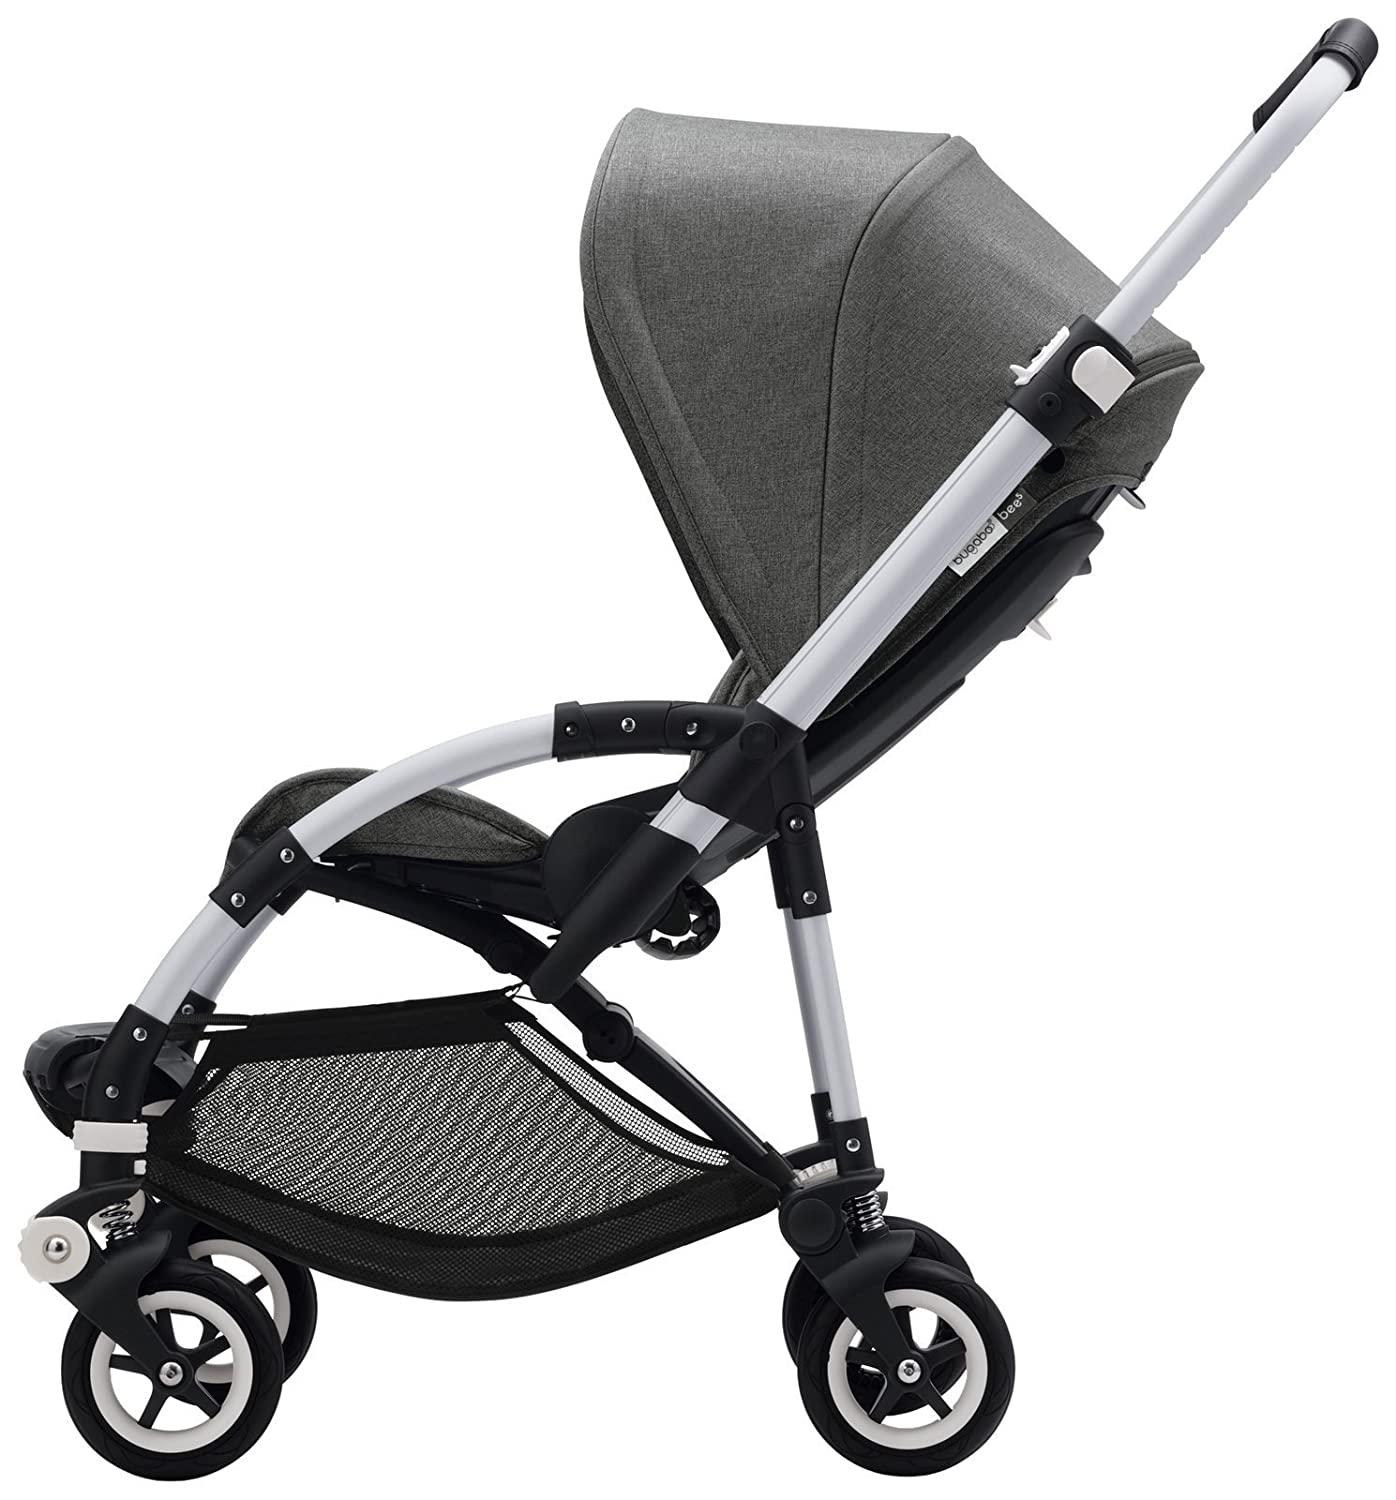 Machine Washable Extendable Sun Shade for Full Weather Protection Grey M/élange Bugaboo Bee5 Sun Canopy